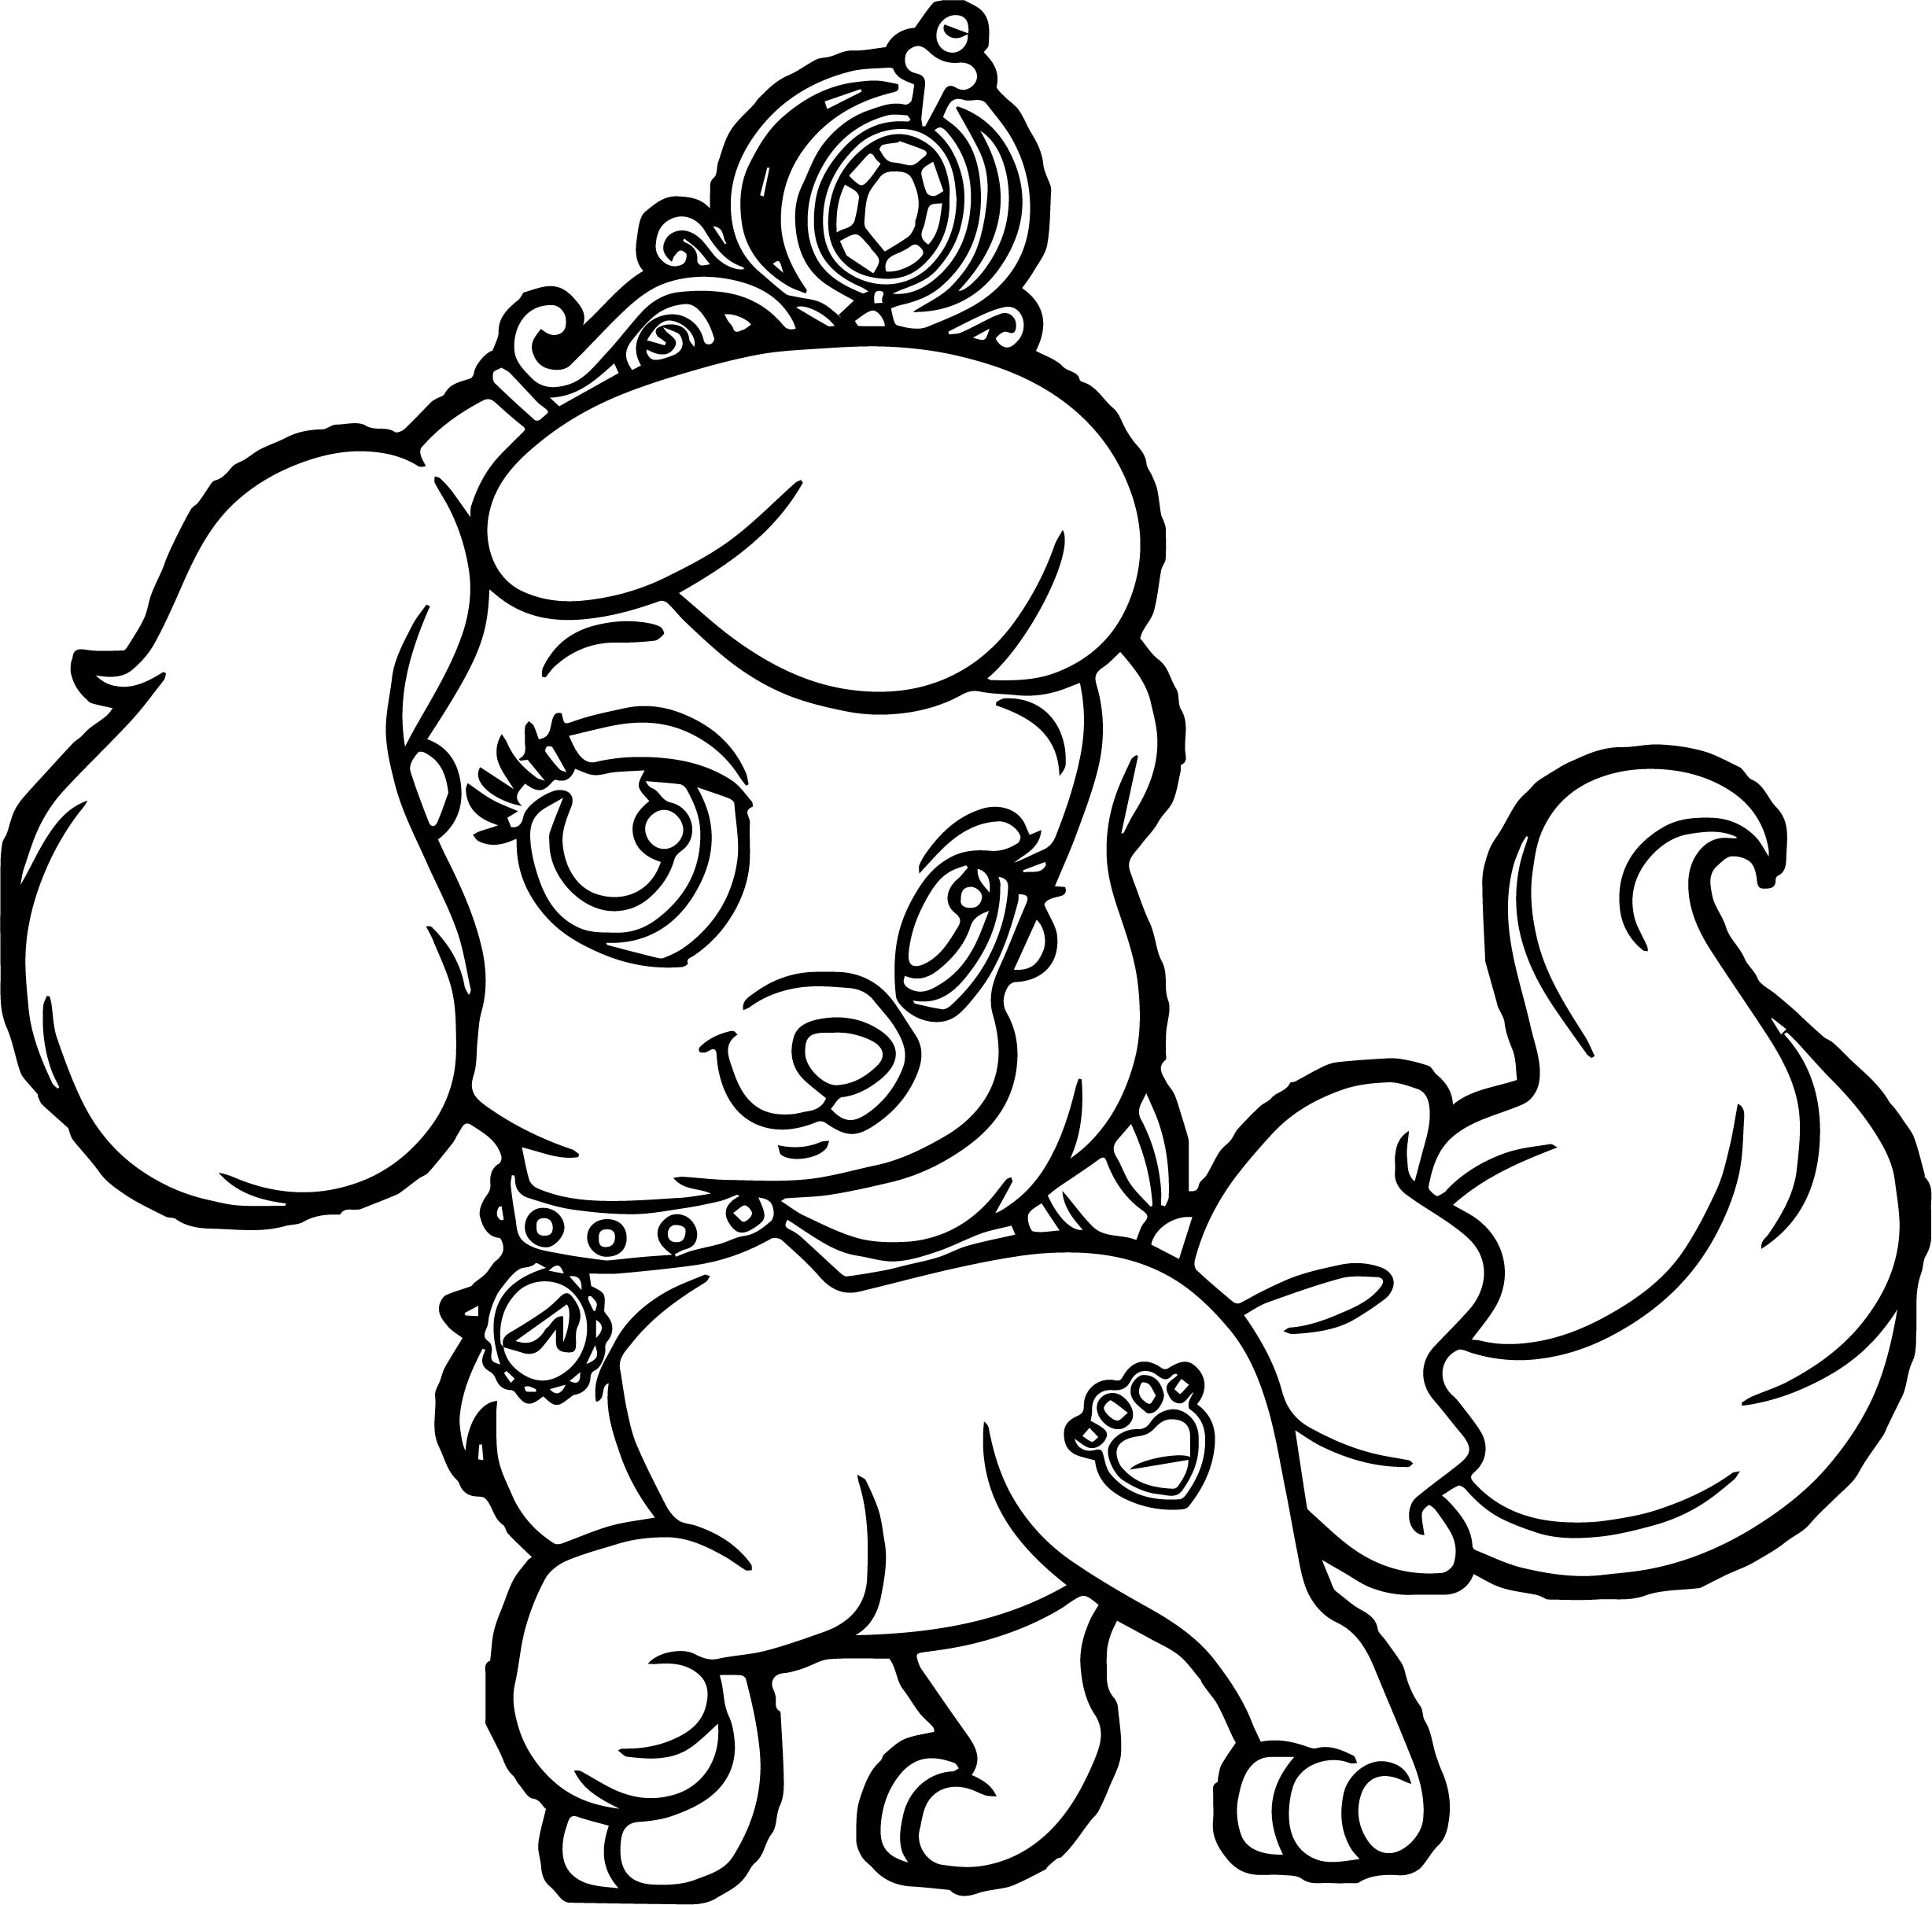 kids coloring puppy cartoon puppy coloring page for kids animal coloring coloring kids puppy